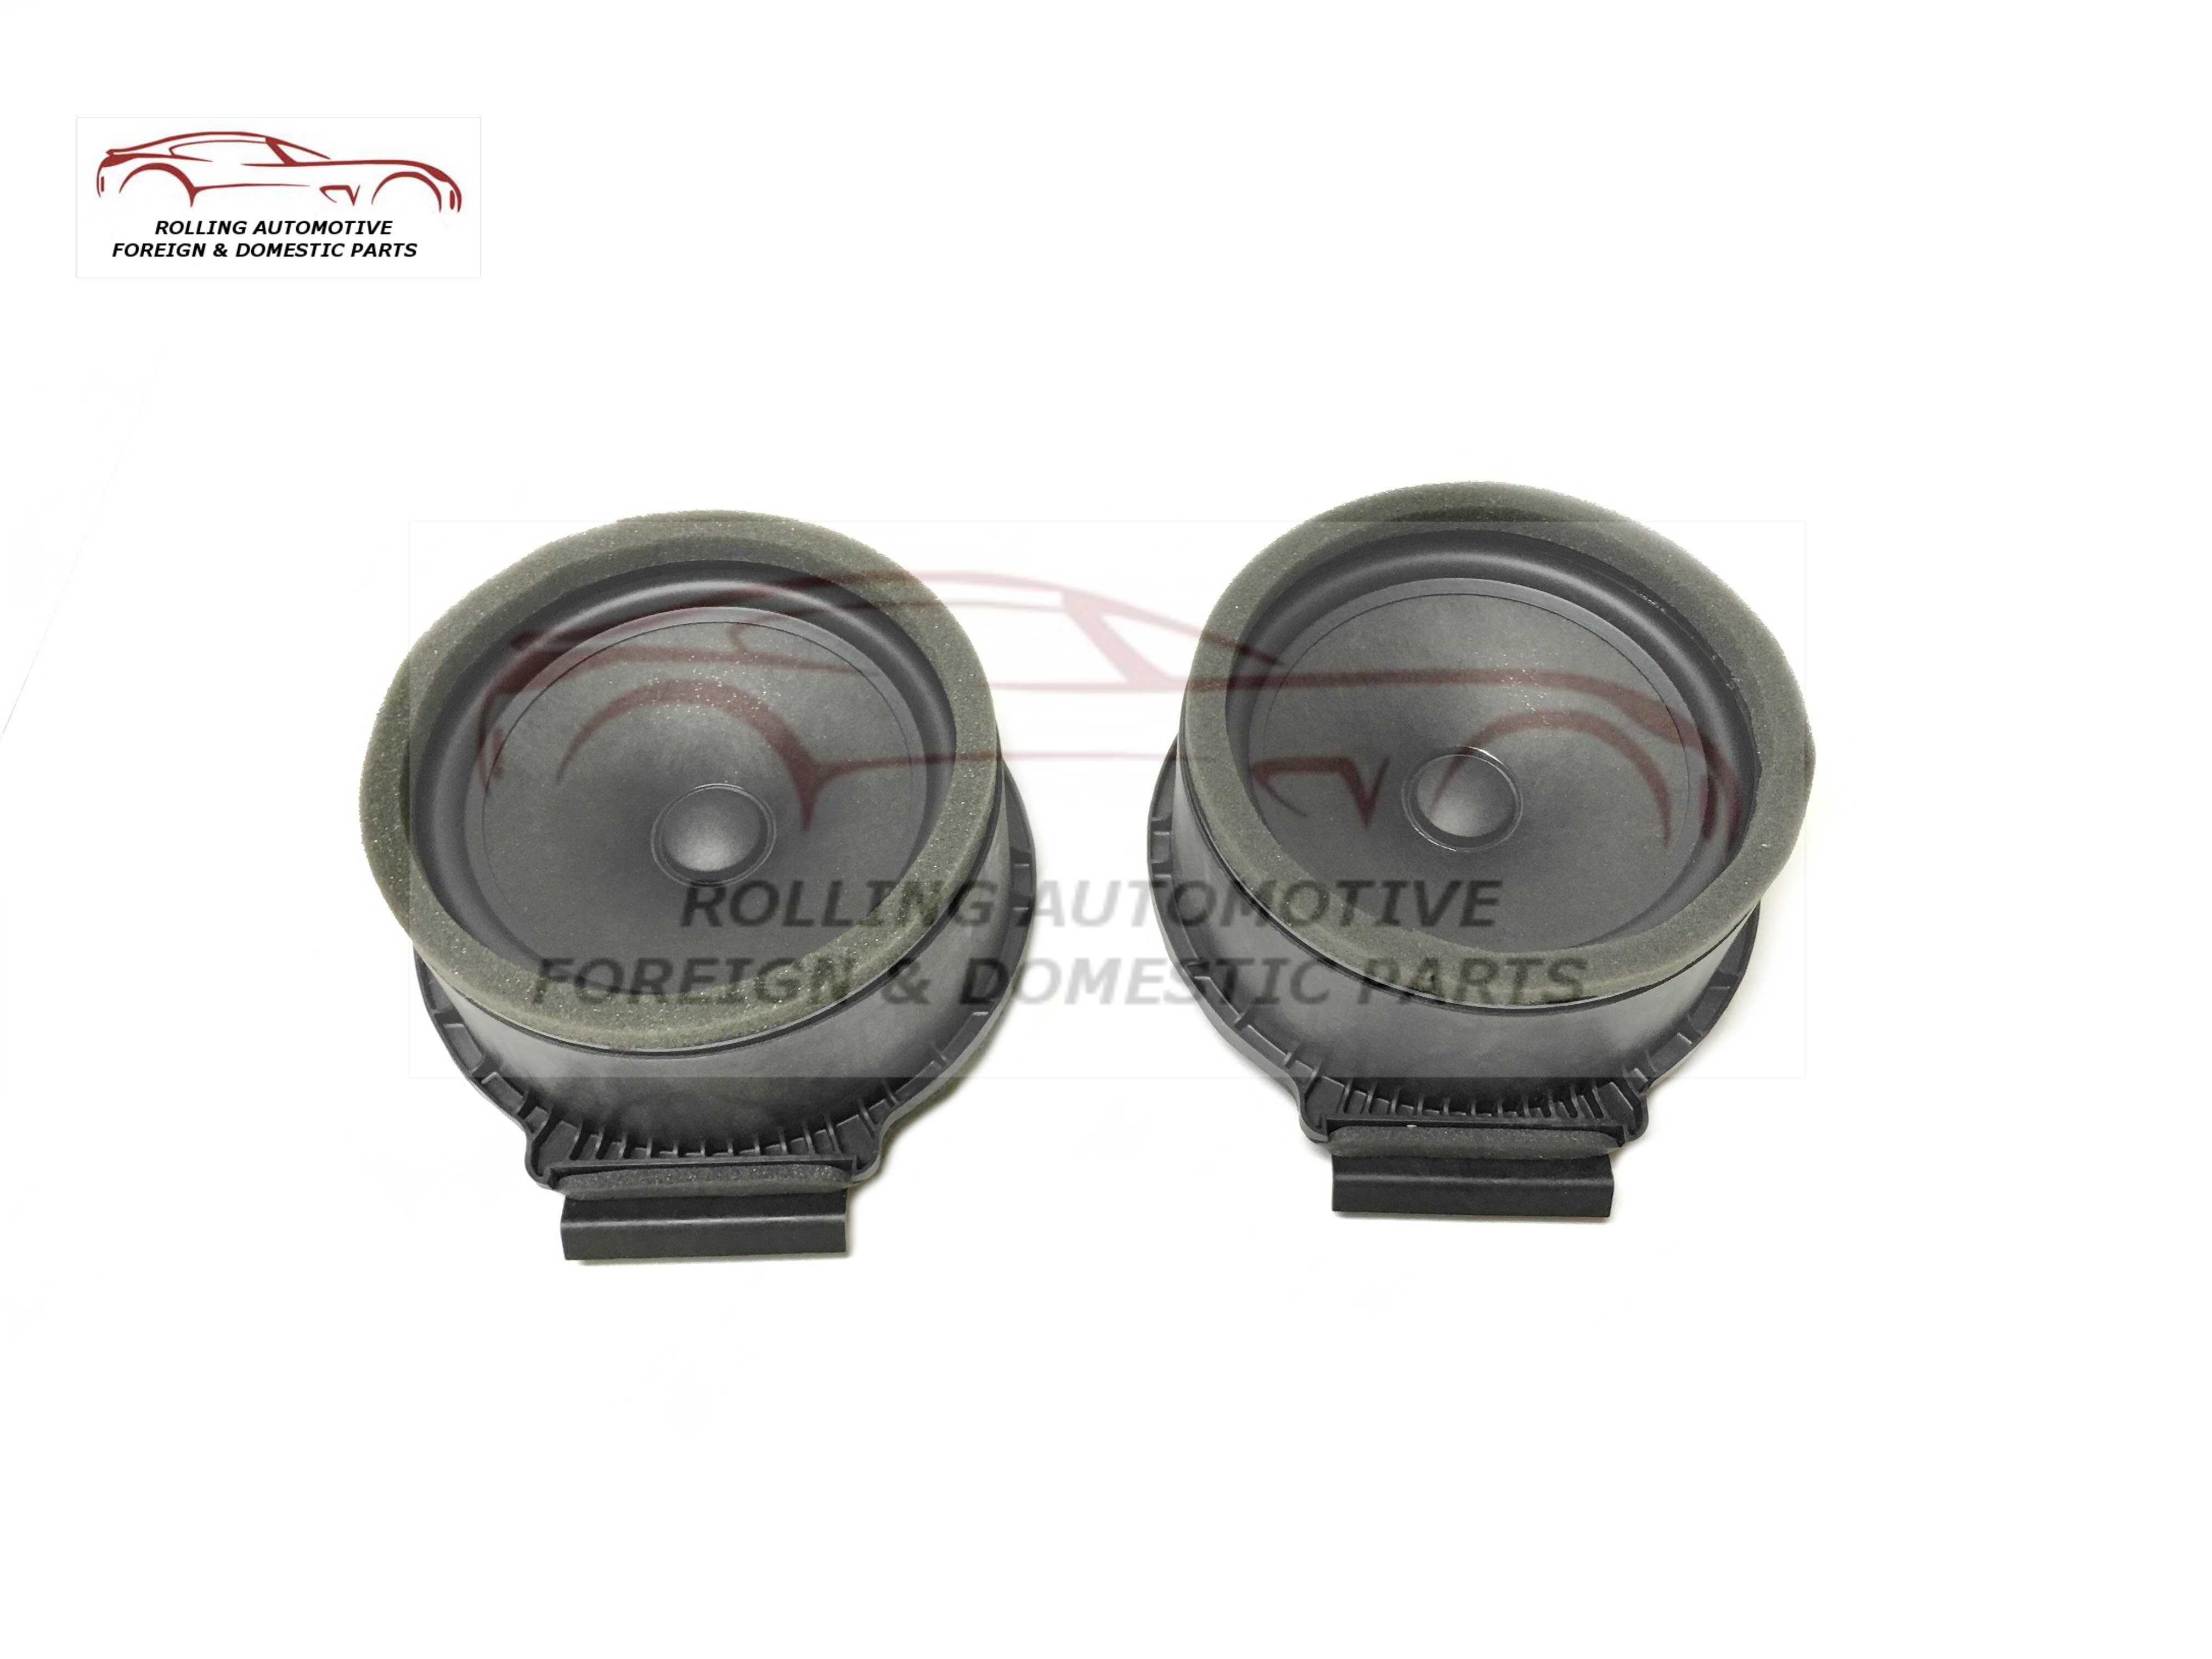 Chevrolet Camaro Front Door Speaker New OEM 92199586 Boston Acoustics Pair 2pcs  sc 1 st  Rolling Automotive : boston door - pezcame.com